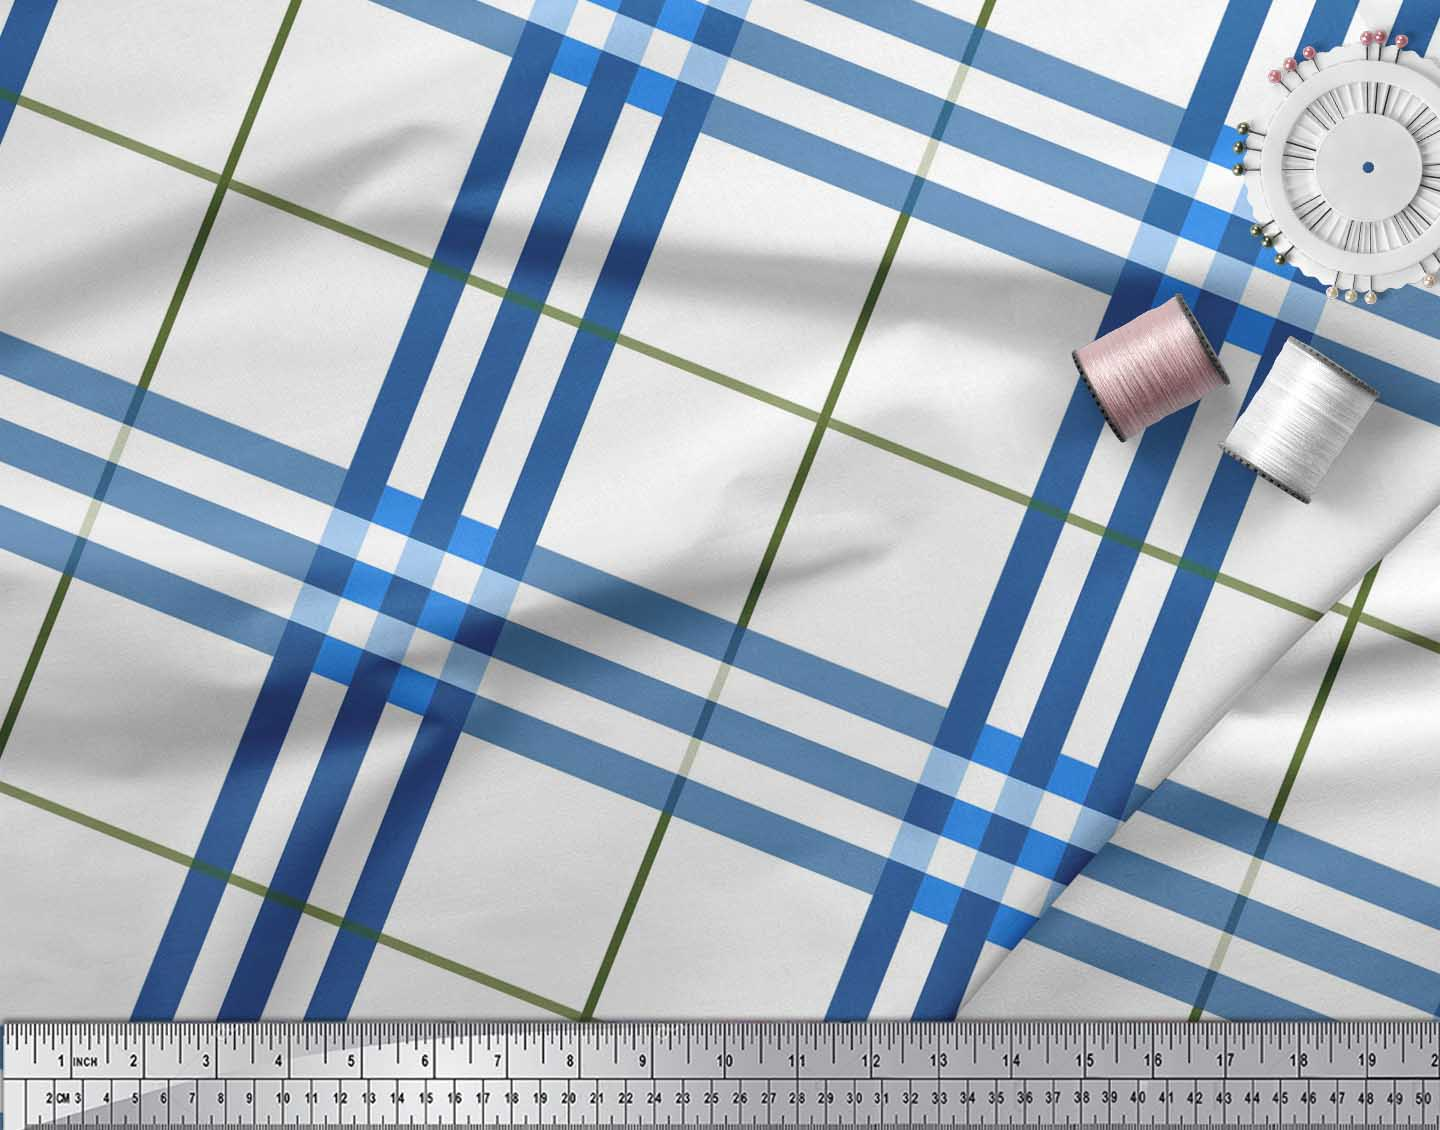 Soimoi-Blue-Cotton-Poplin-Fabric-Gingham-Check-Print-Fabric-by-the-A9S thumbnail 3